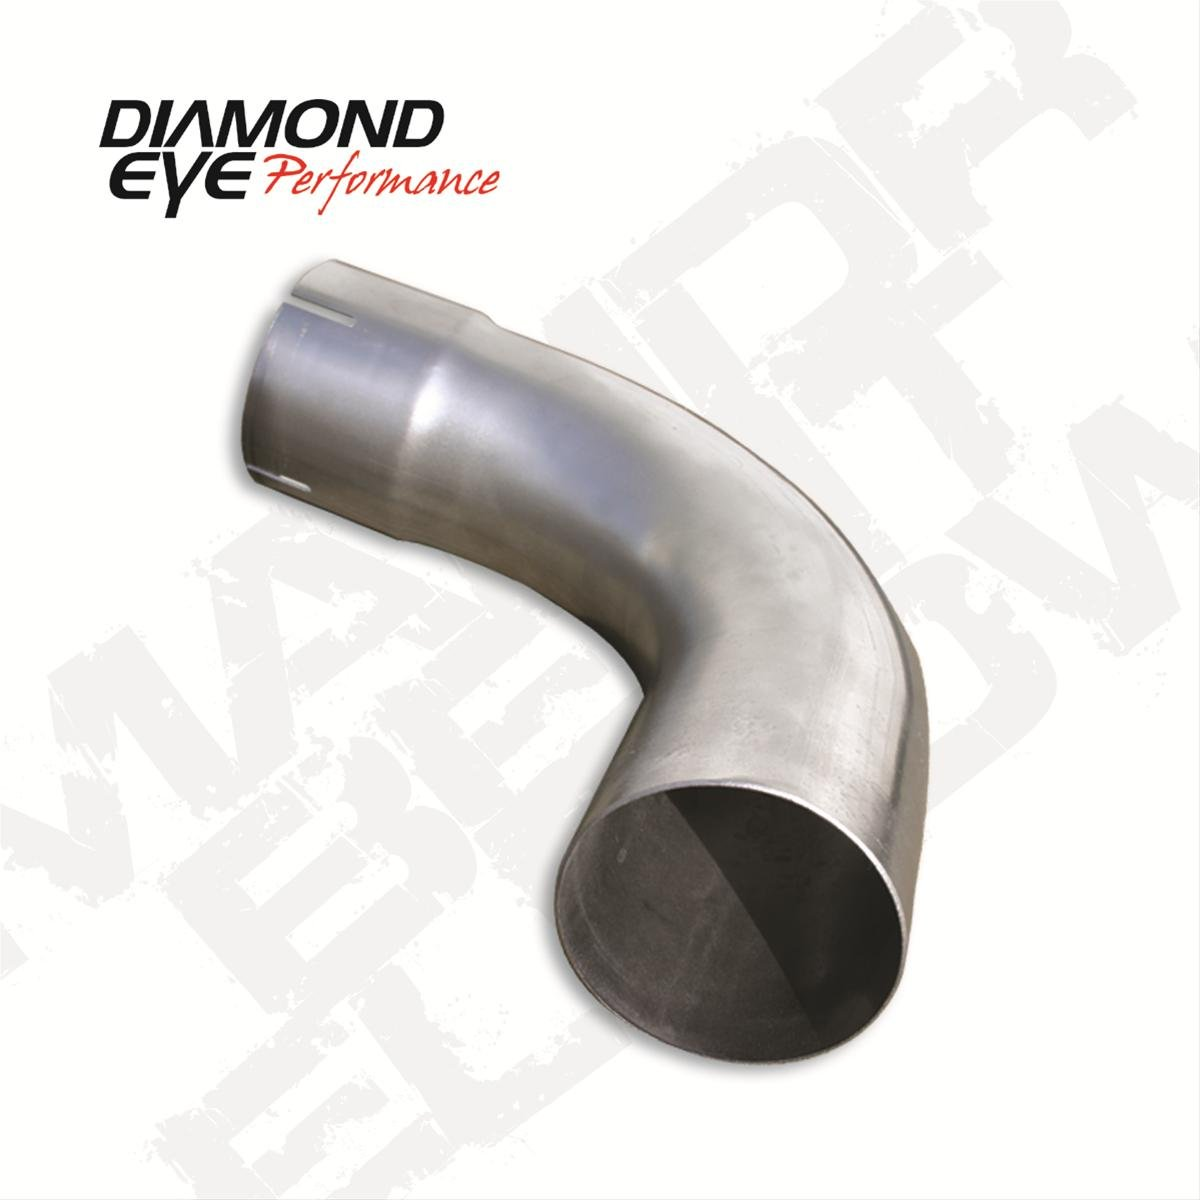 Diamond Eye 529025 Exhaust Pipe, 5' Elbow 5 Elbow